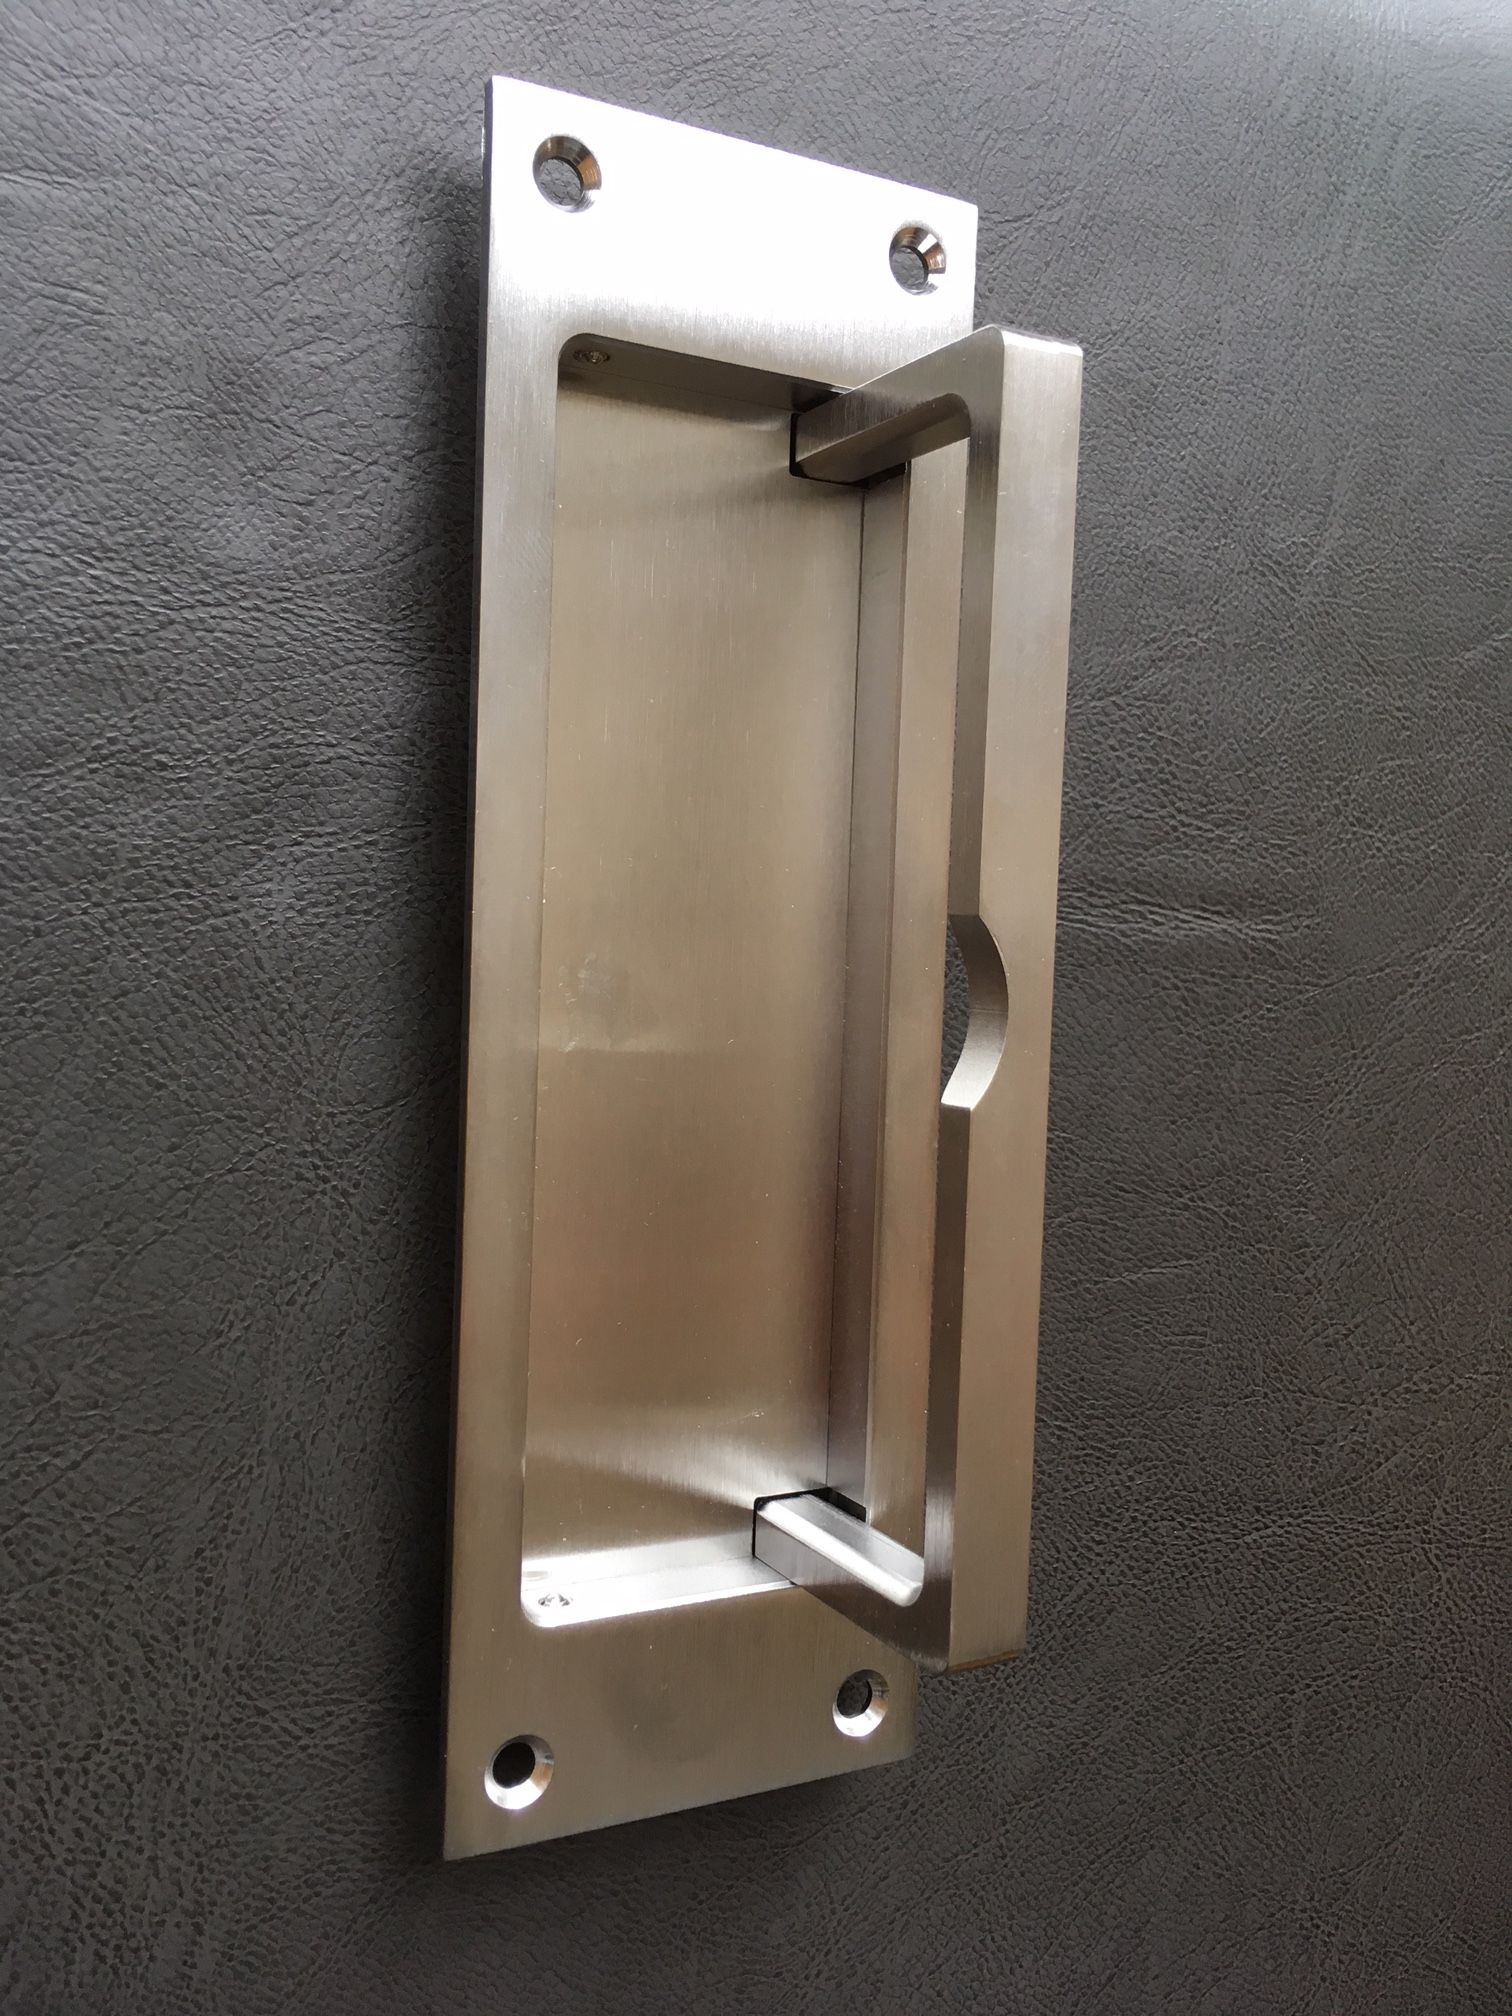 Knc Modern Stainless Steel Door Pulls Can Complete An Entire Room These High Quality Handles Are Ready For Dec Doors Interior Barn Doors Stainless Steel Doors